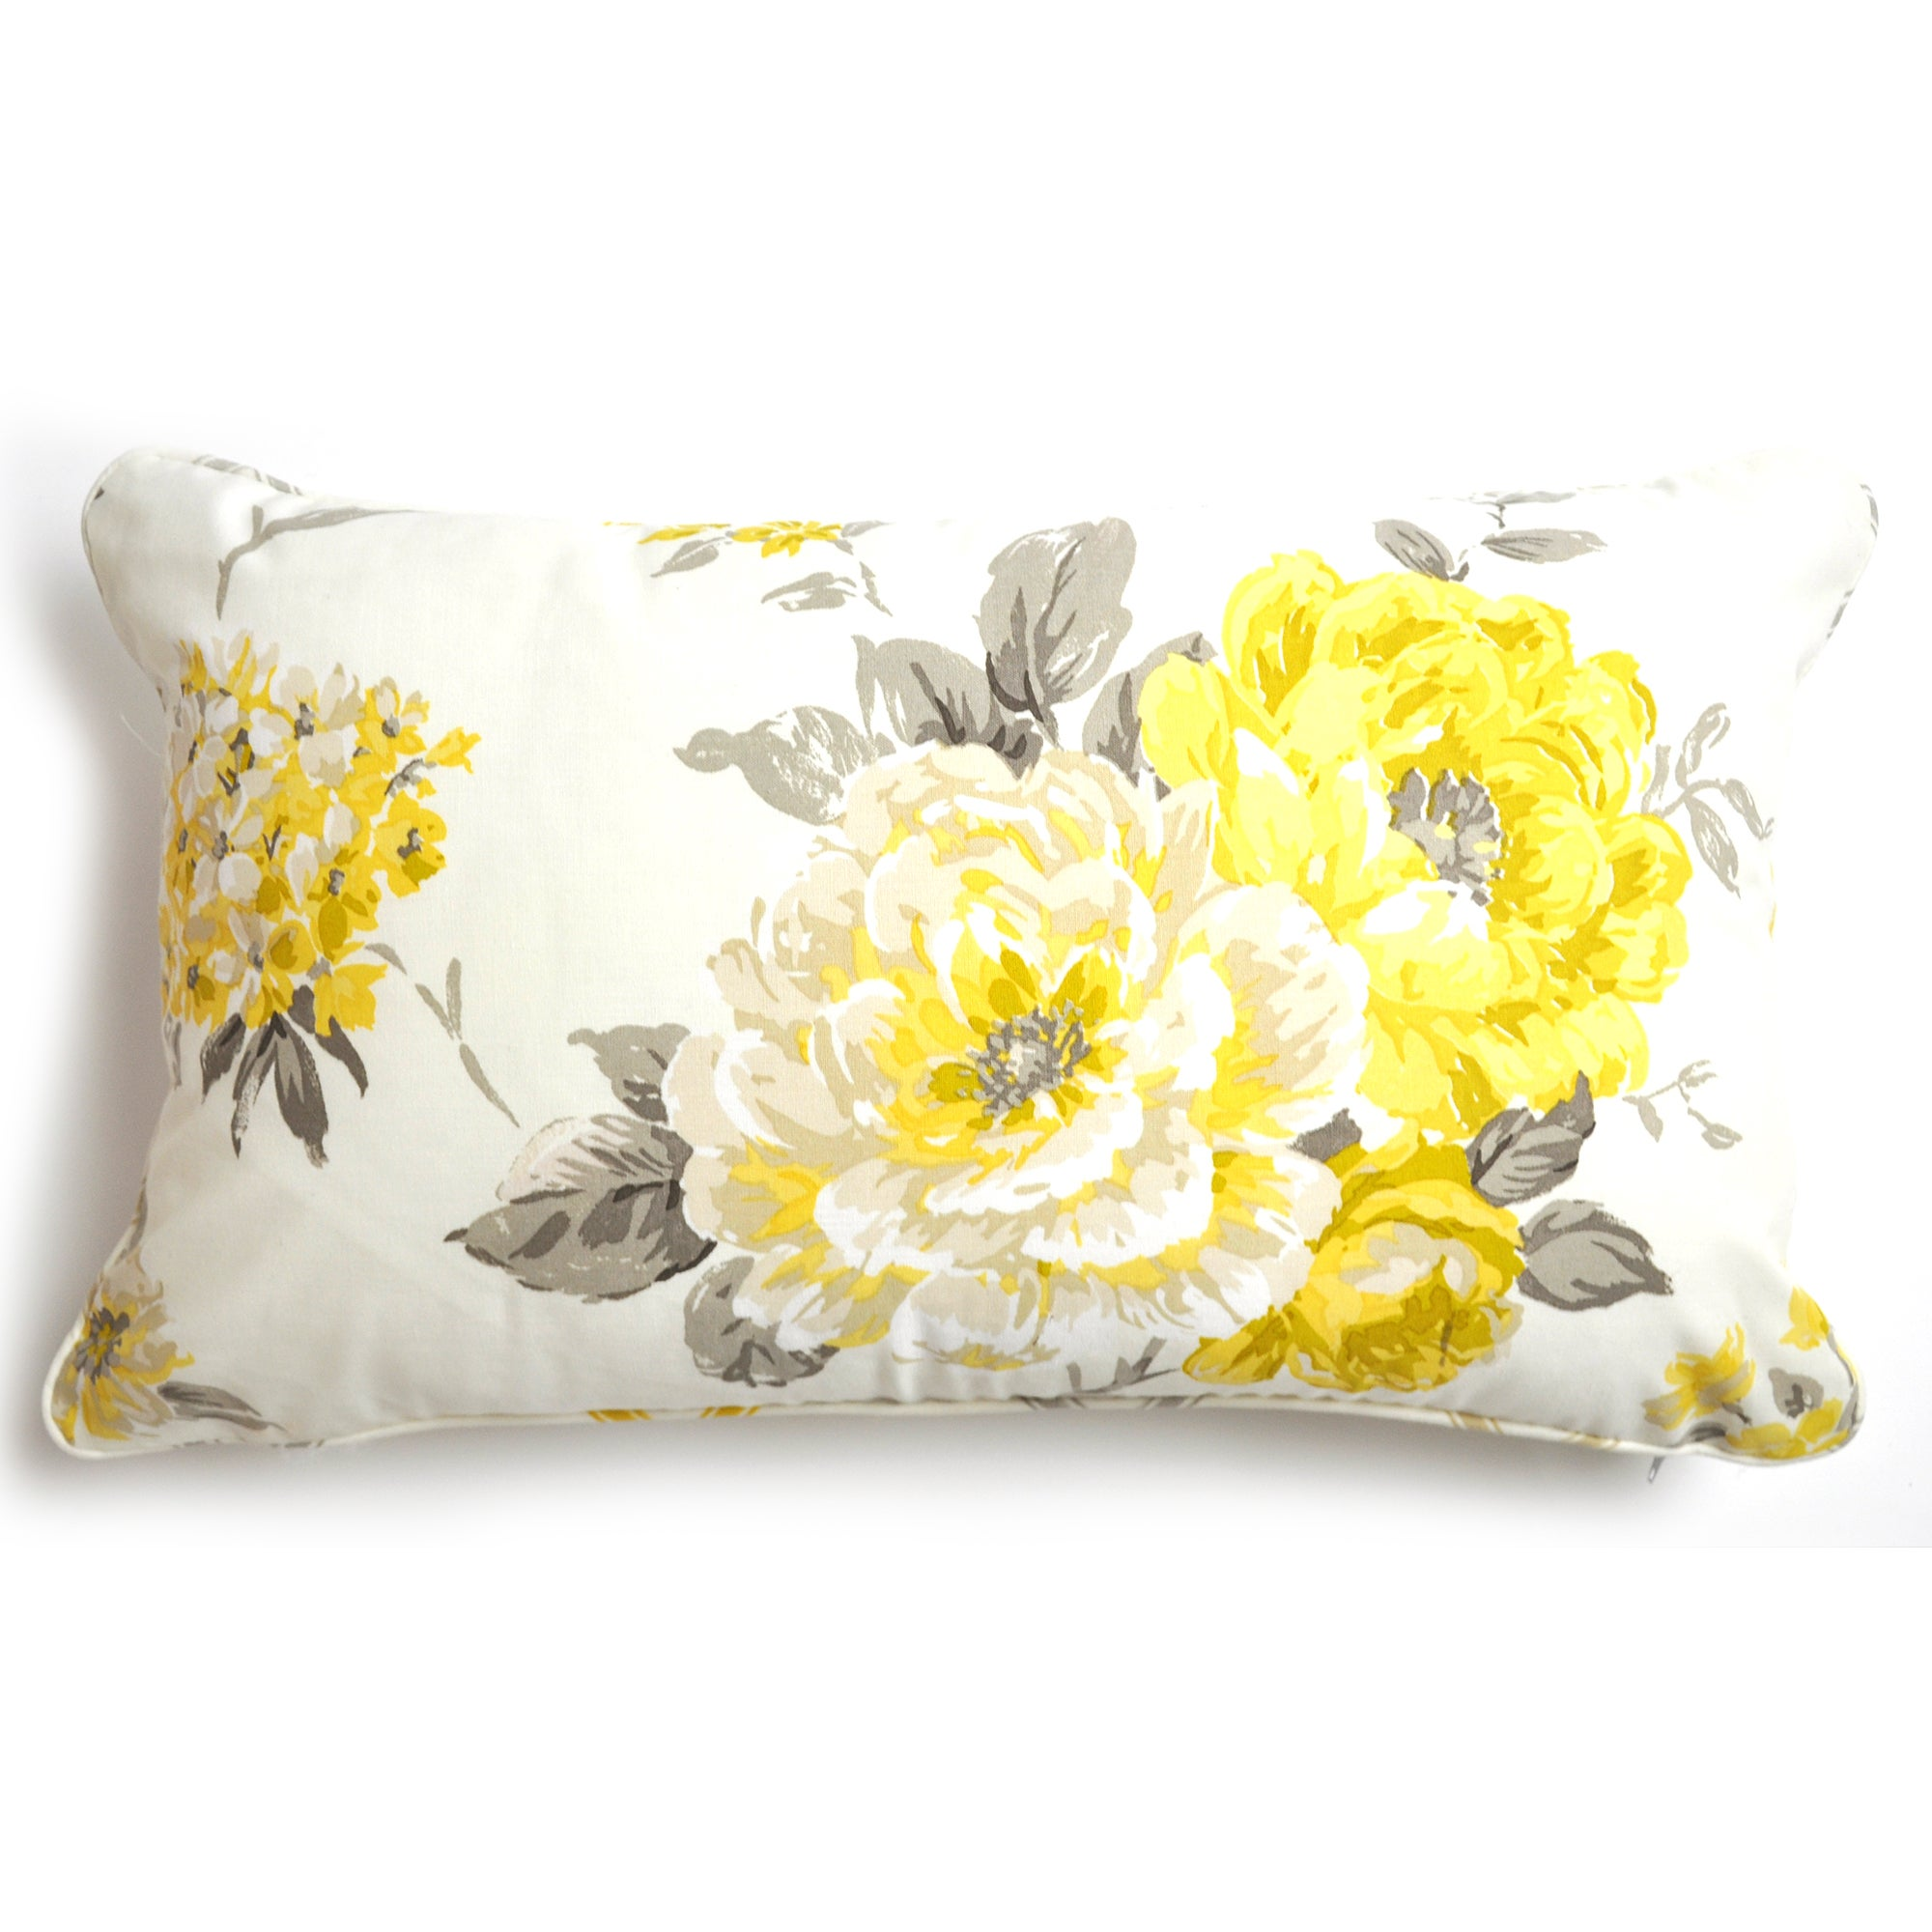 Lemon Windermere Collection Boudoir Cushion